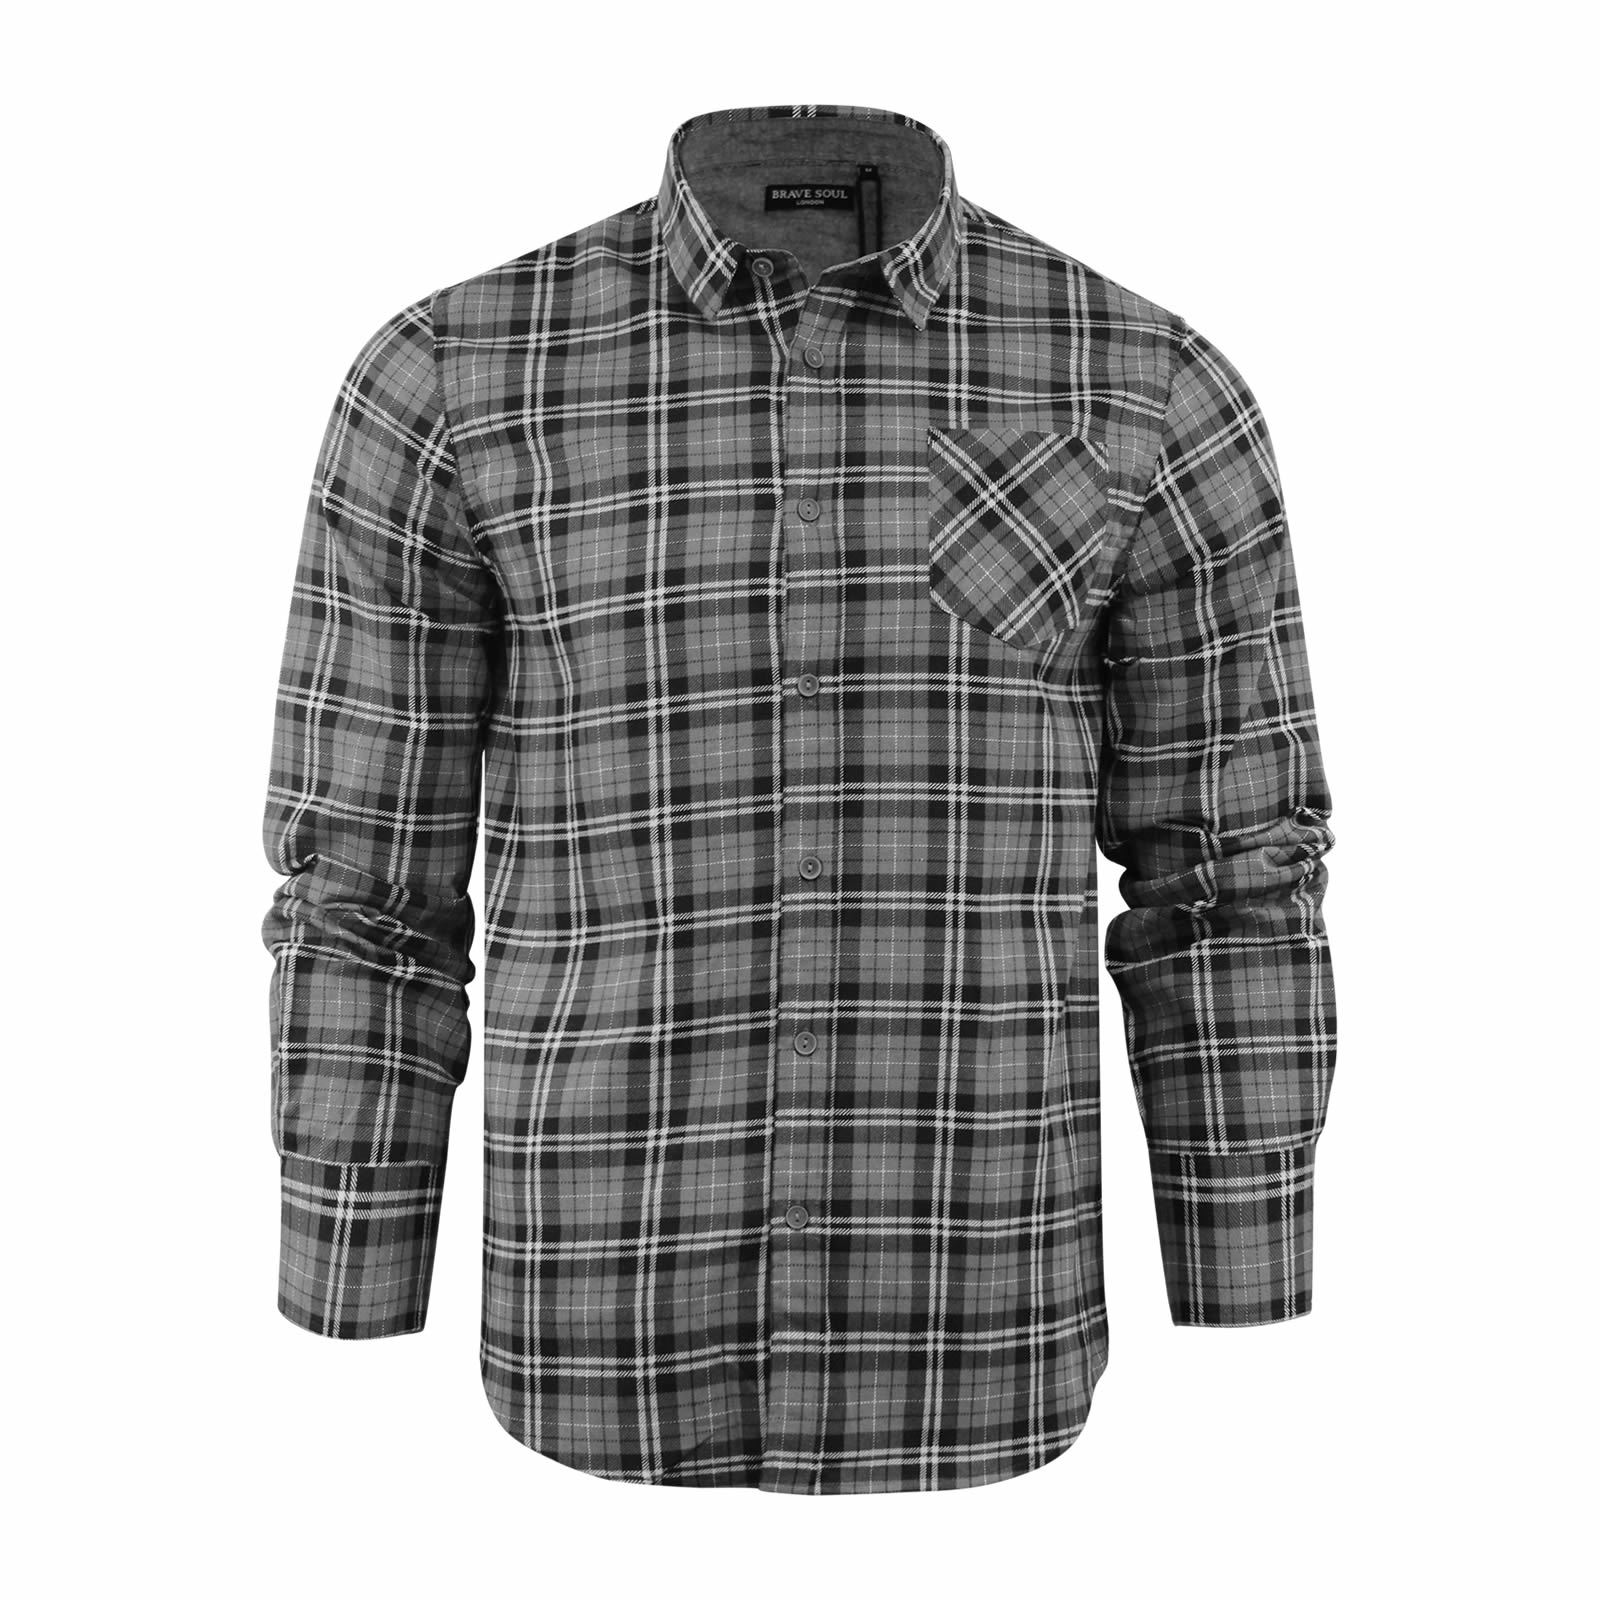 Mens Black And White Checked Shirts